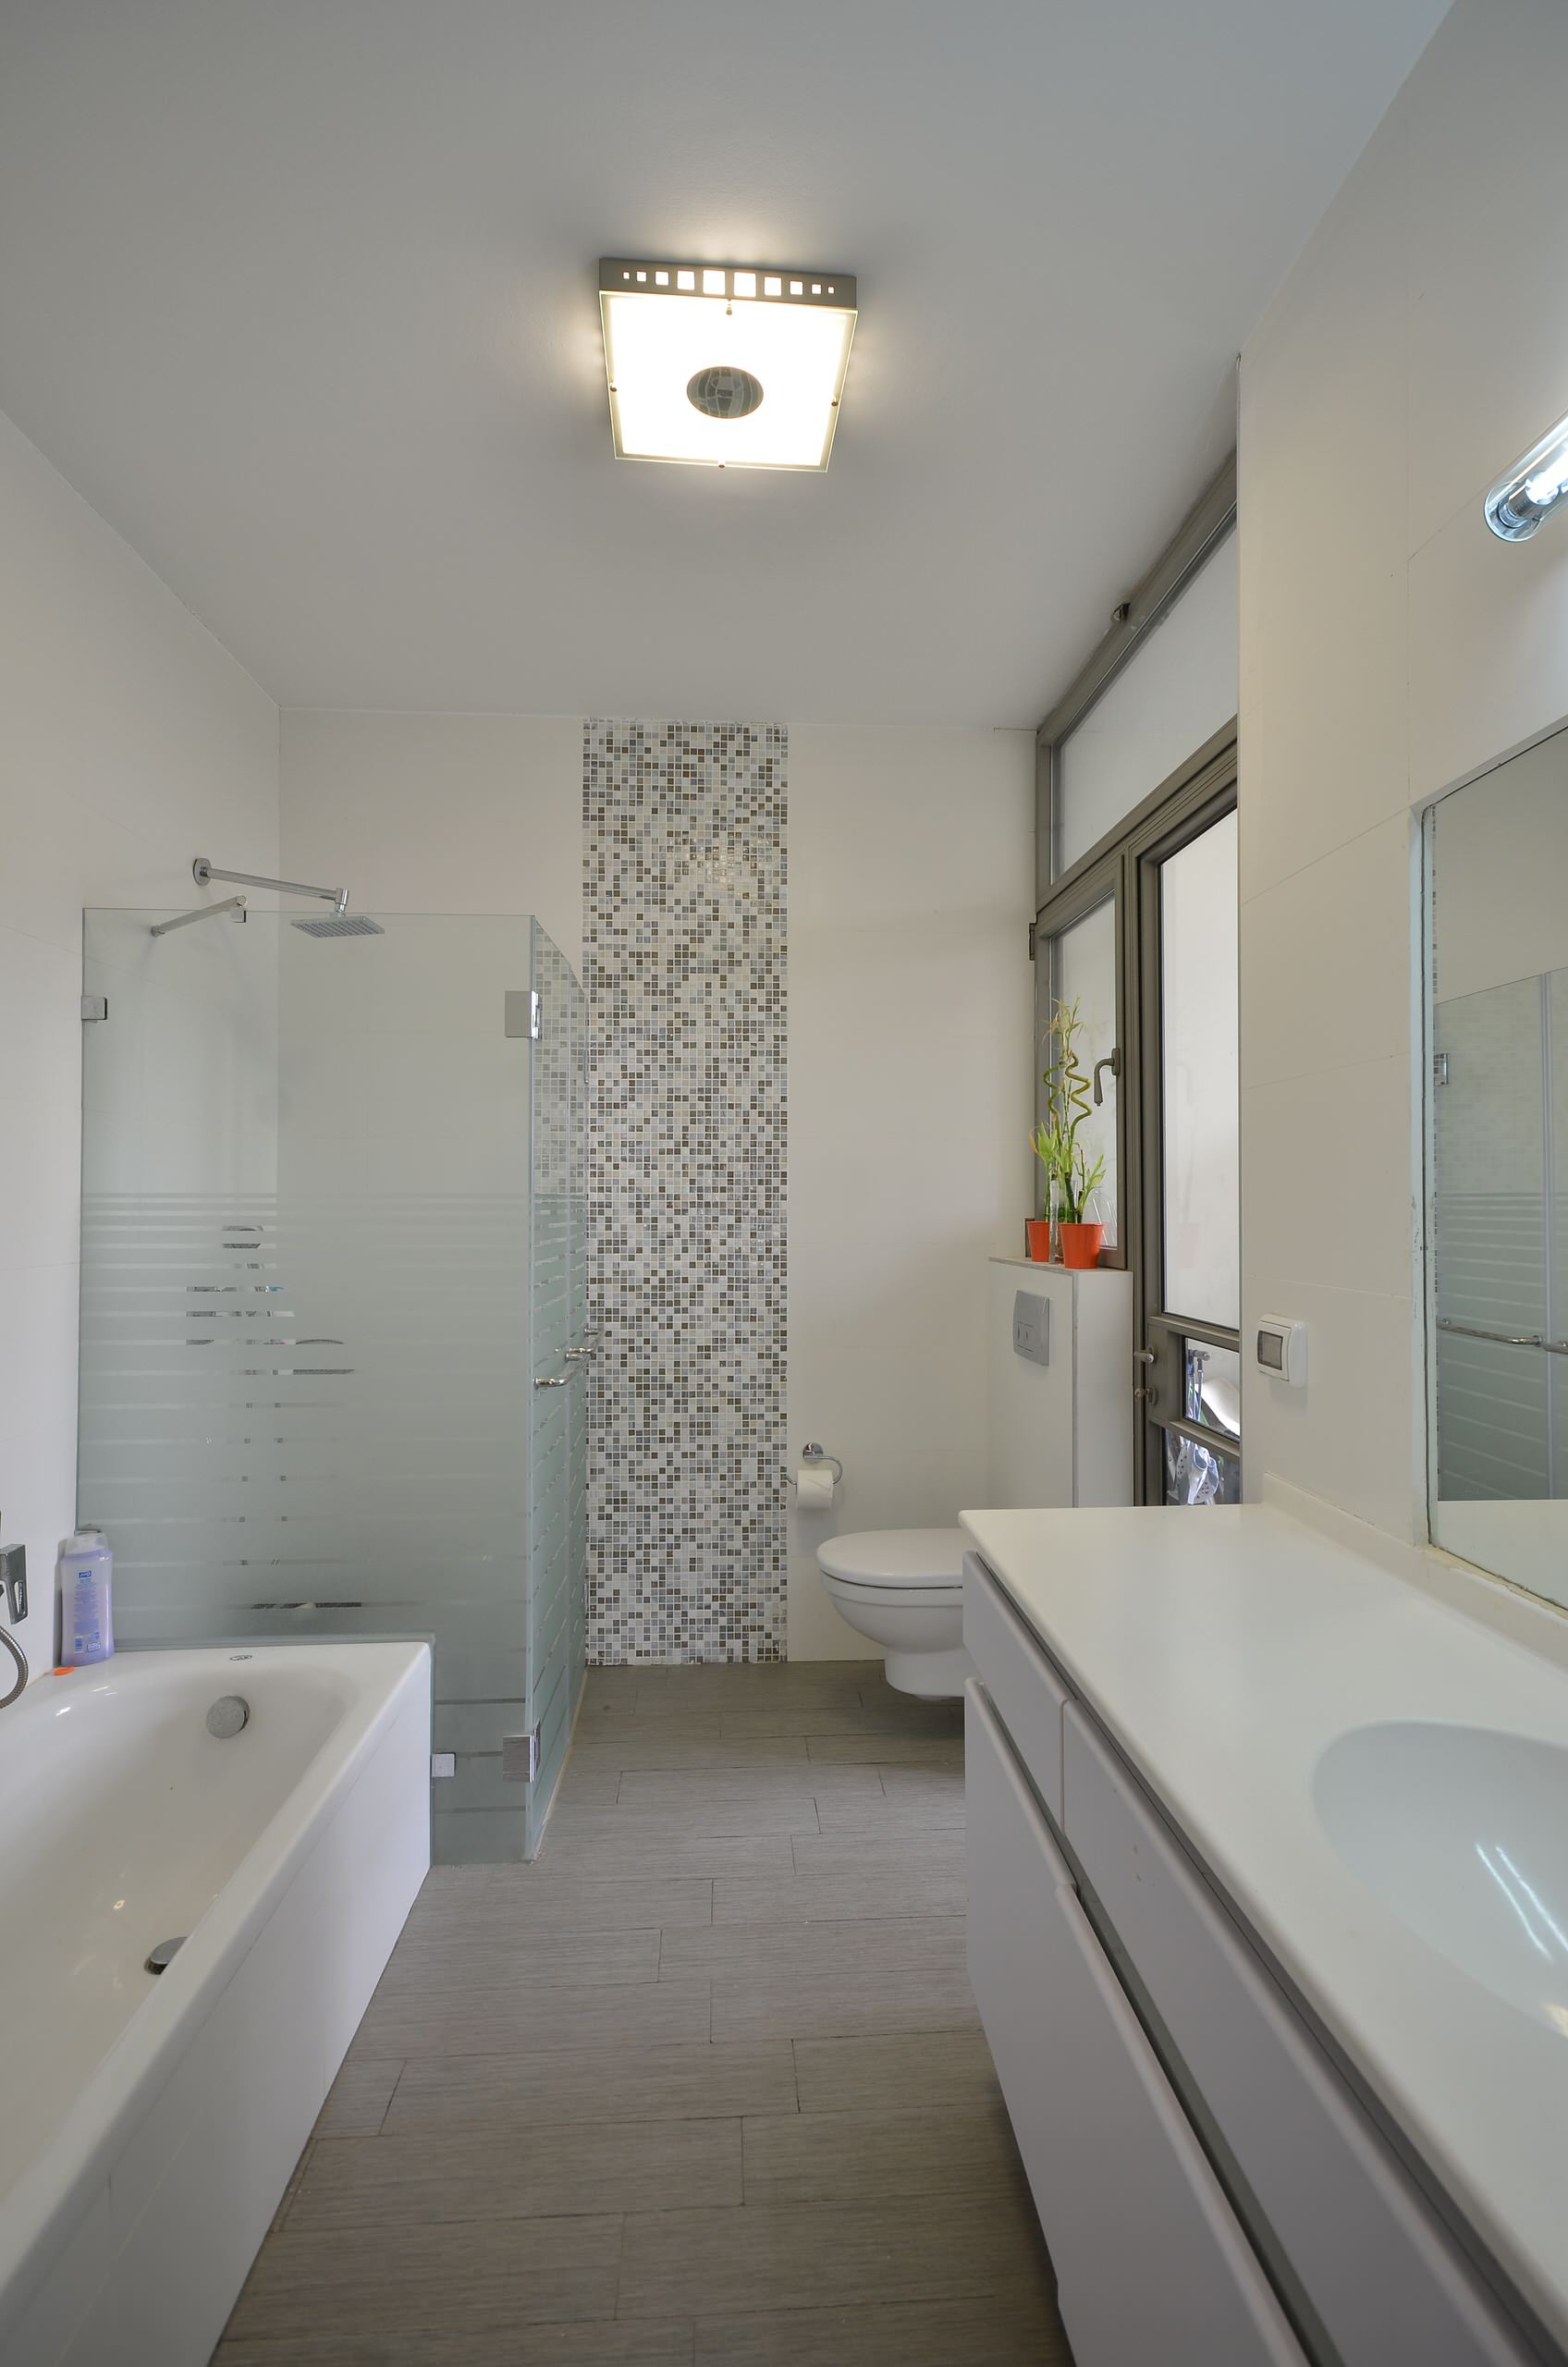 Remodel Bathroom Ideas Using Glass Shower Enclosures: Bathtub And Frosted Glass Shower Plus Small Tile Accent Wall With Tall Ceiling In Contemporary Bathroom Plus Vanity Storage And Glass Shower Enclosures Plus Modern Sink On White Counter